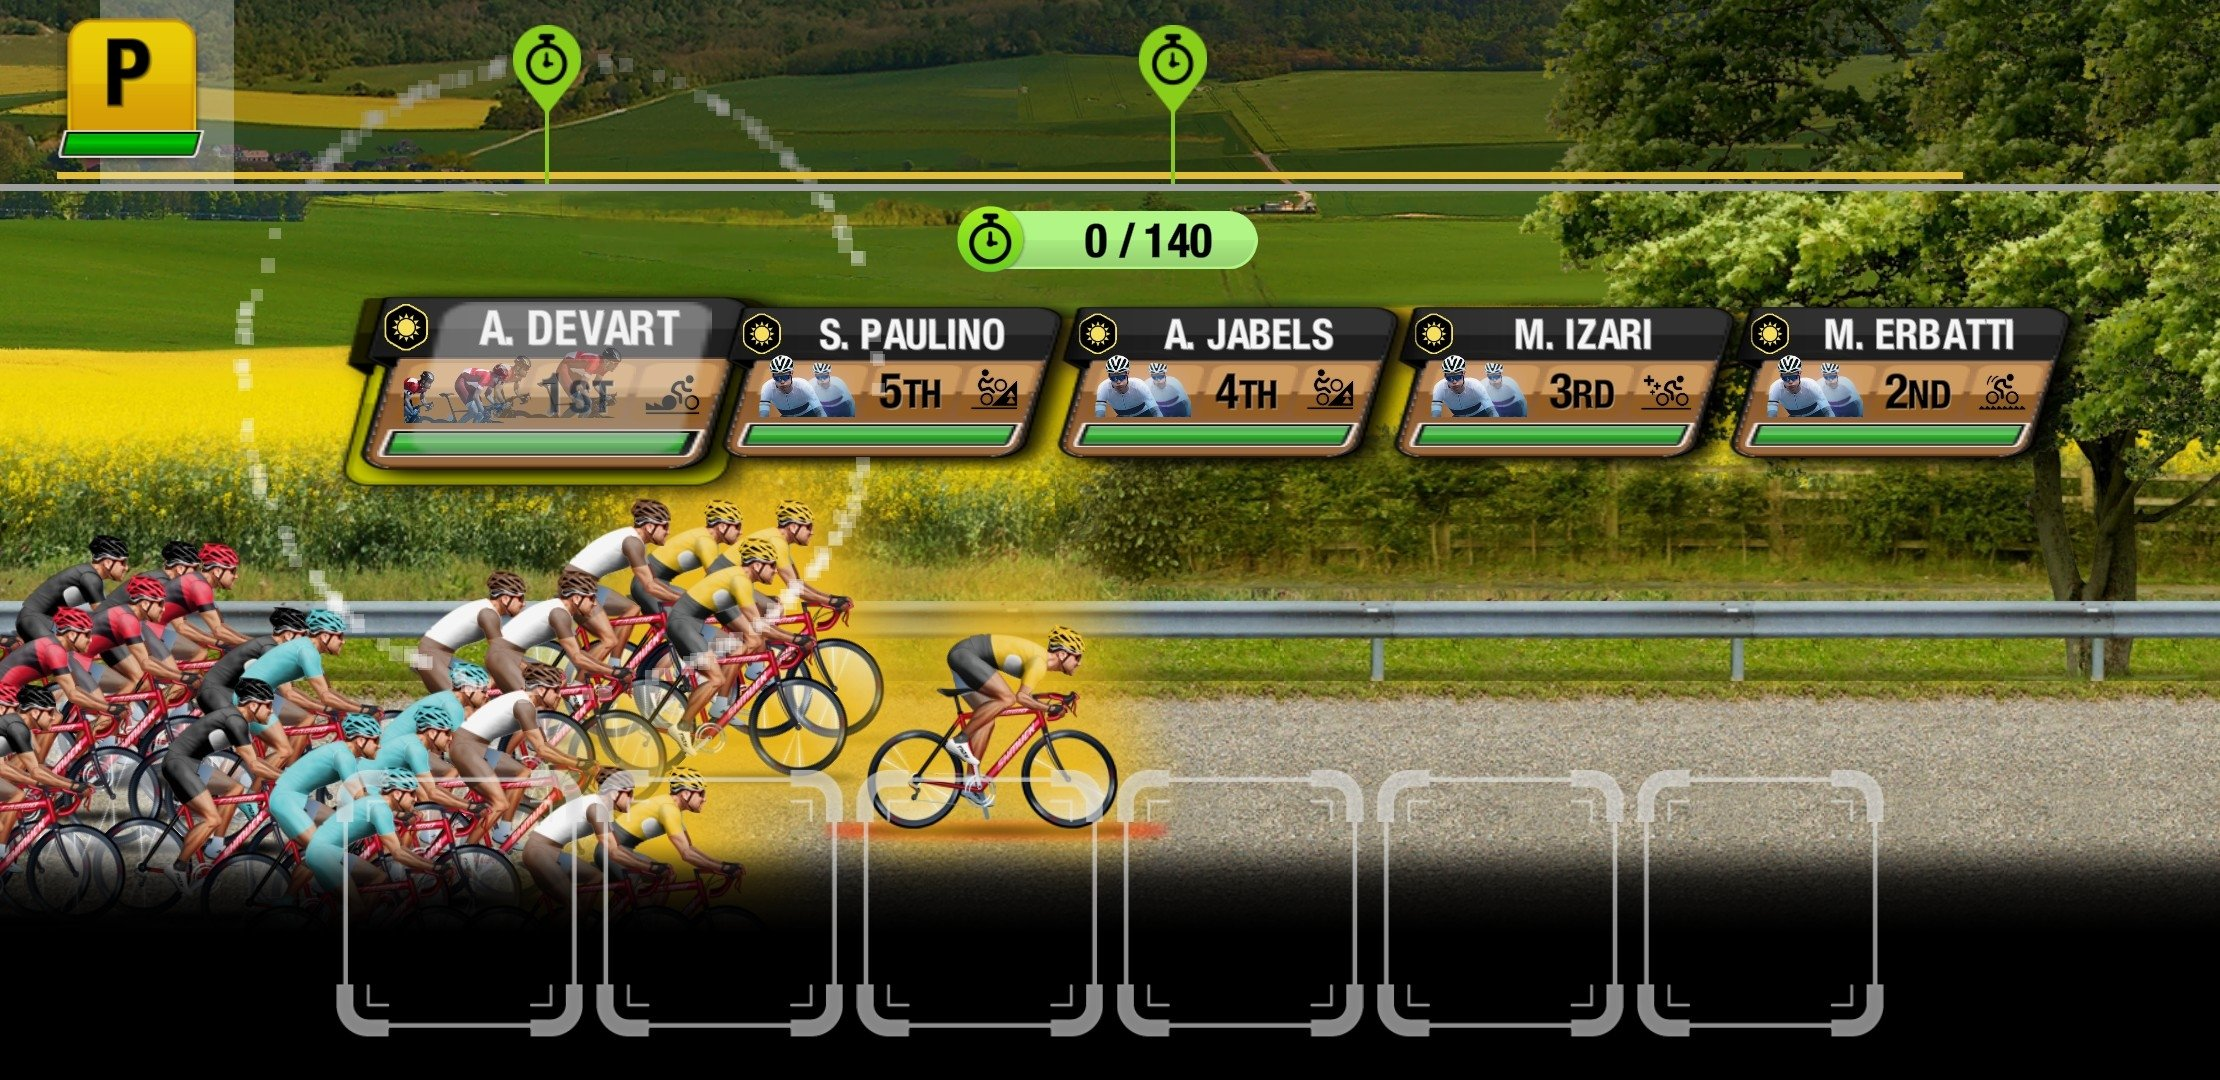 Tour de France 2017 Android image 7